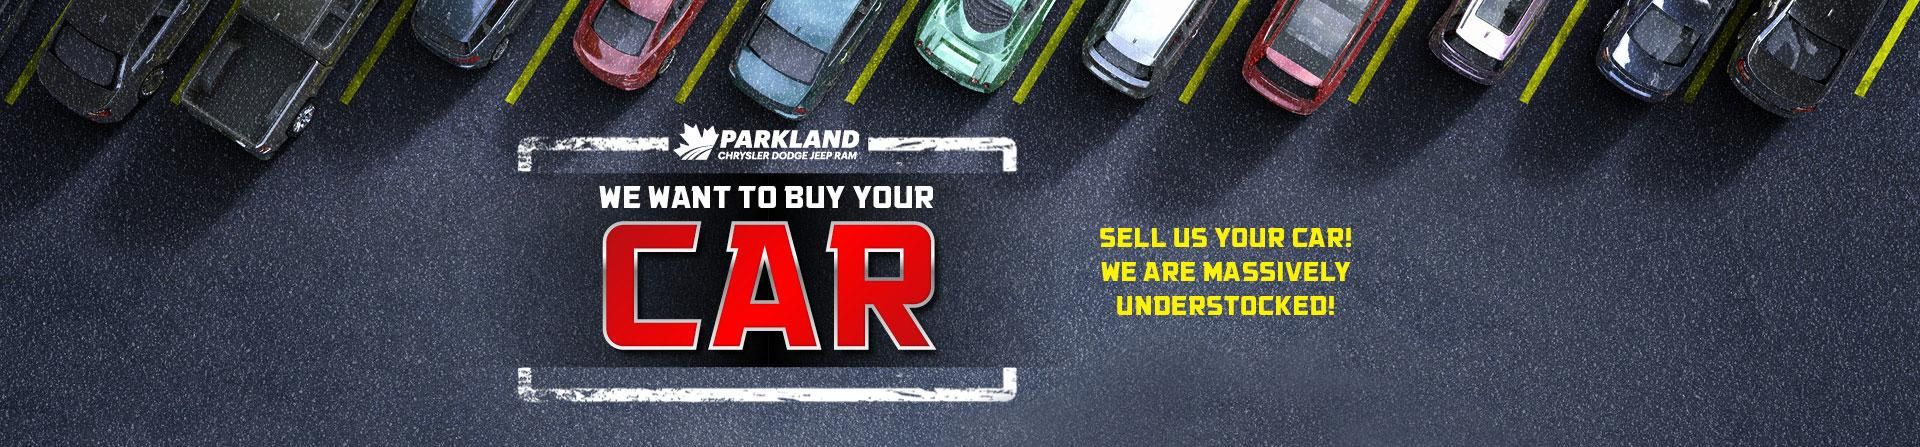 WE WANT TO BUY YOUR CAR at Parkland Chrysler Dodge Jeep Ram in 200 St. Matthews Ave